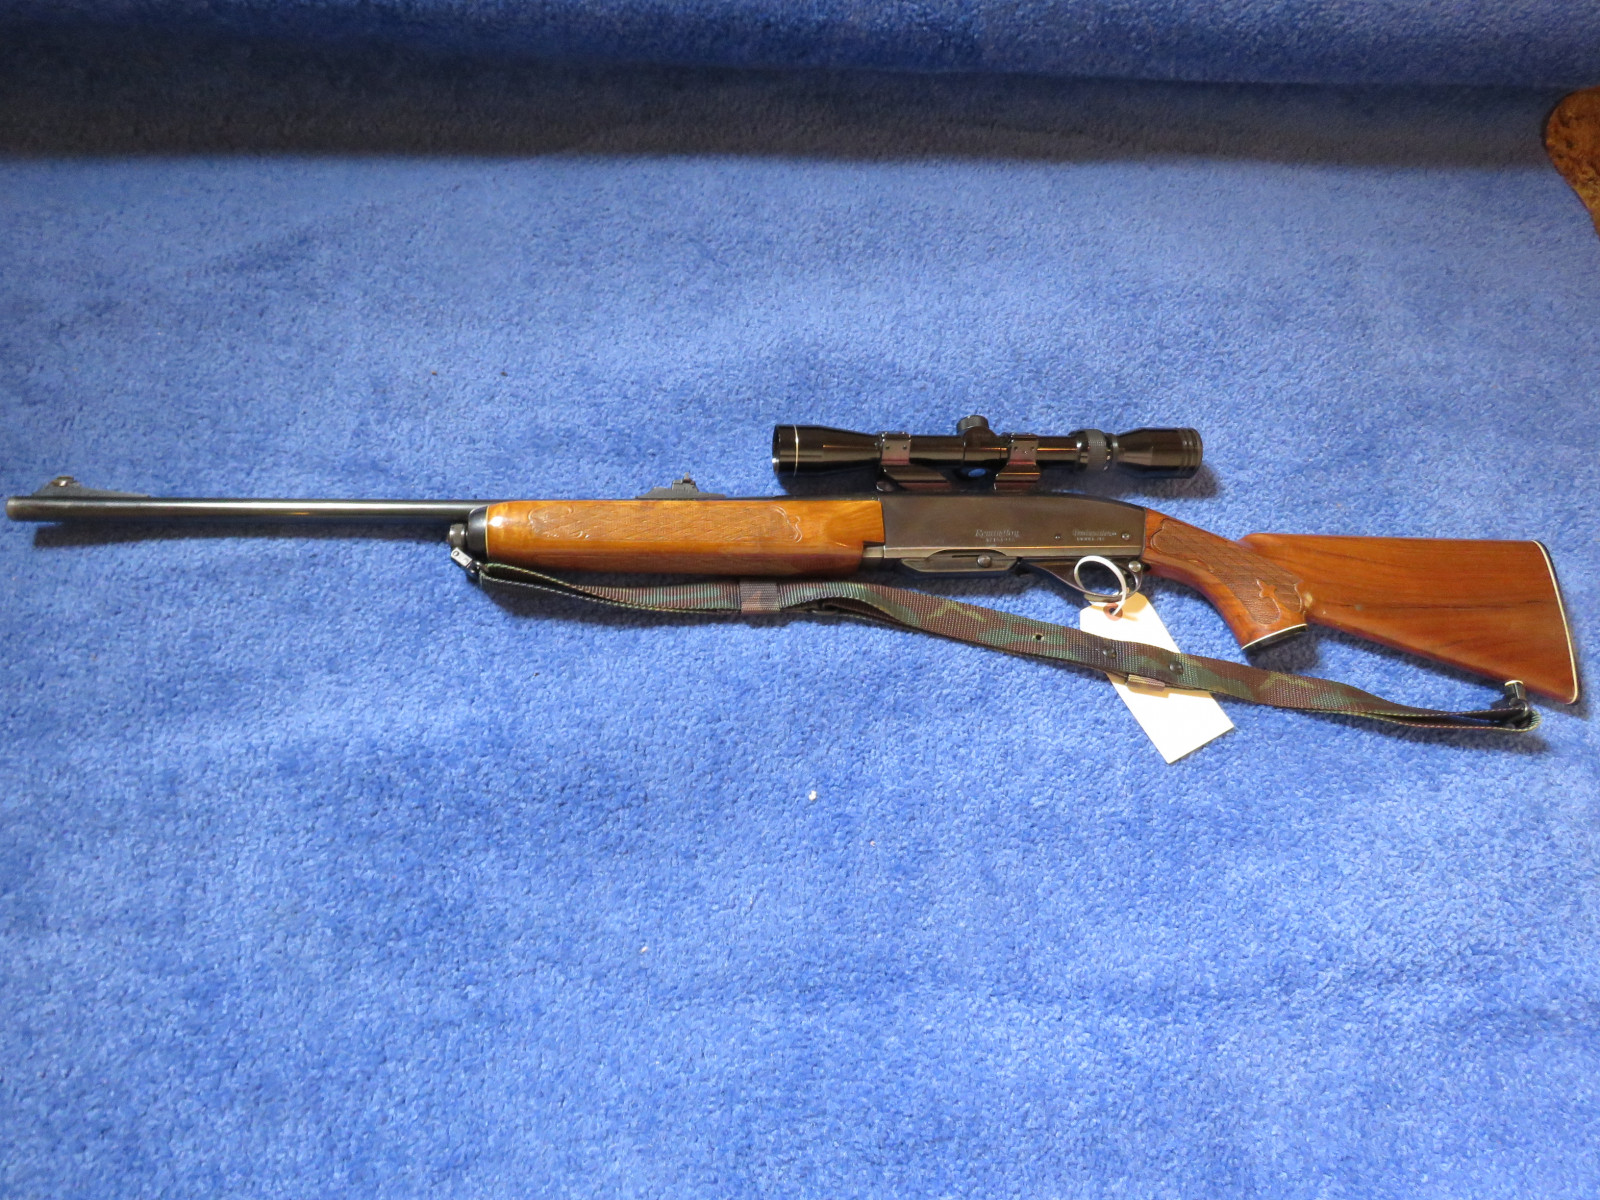 Remington 30.06 Model 742 Woodmaster Rifle - Image 2